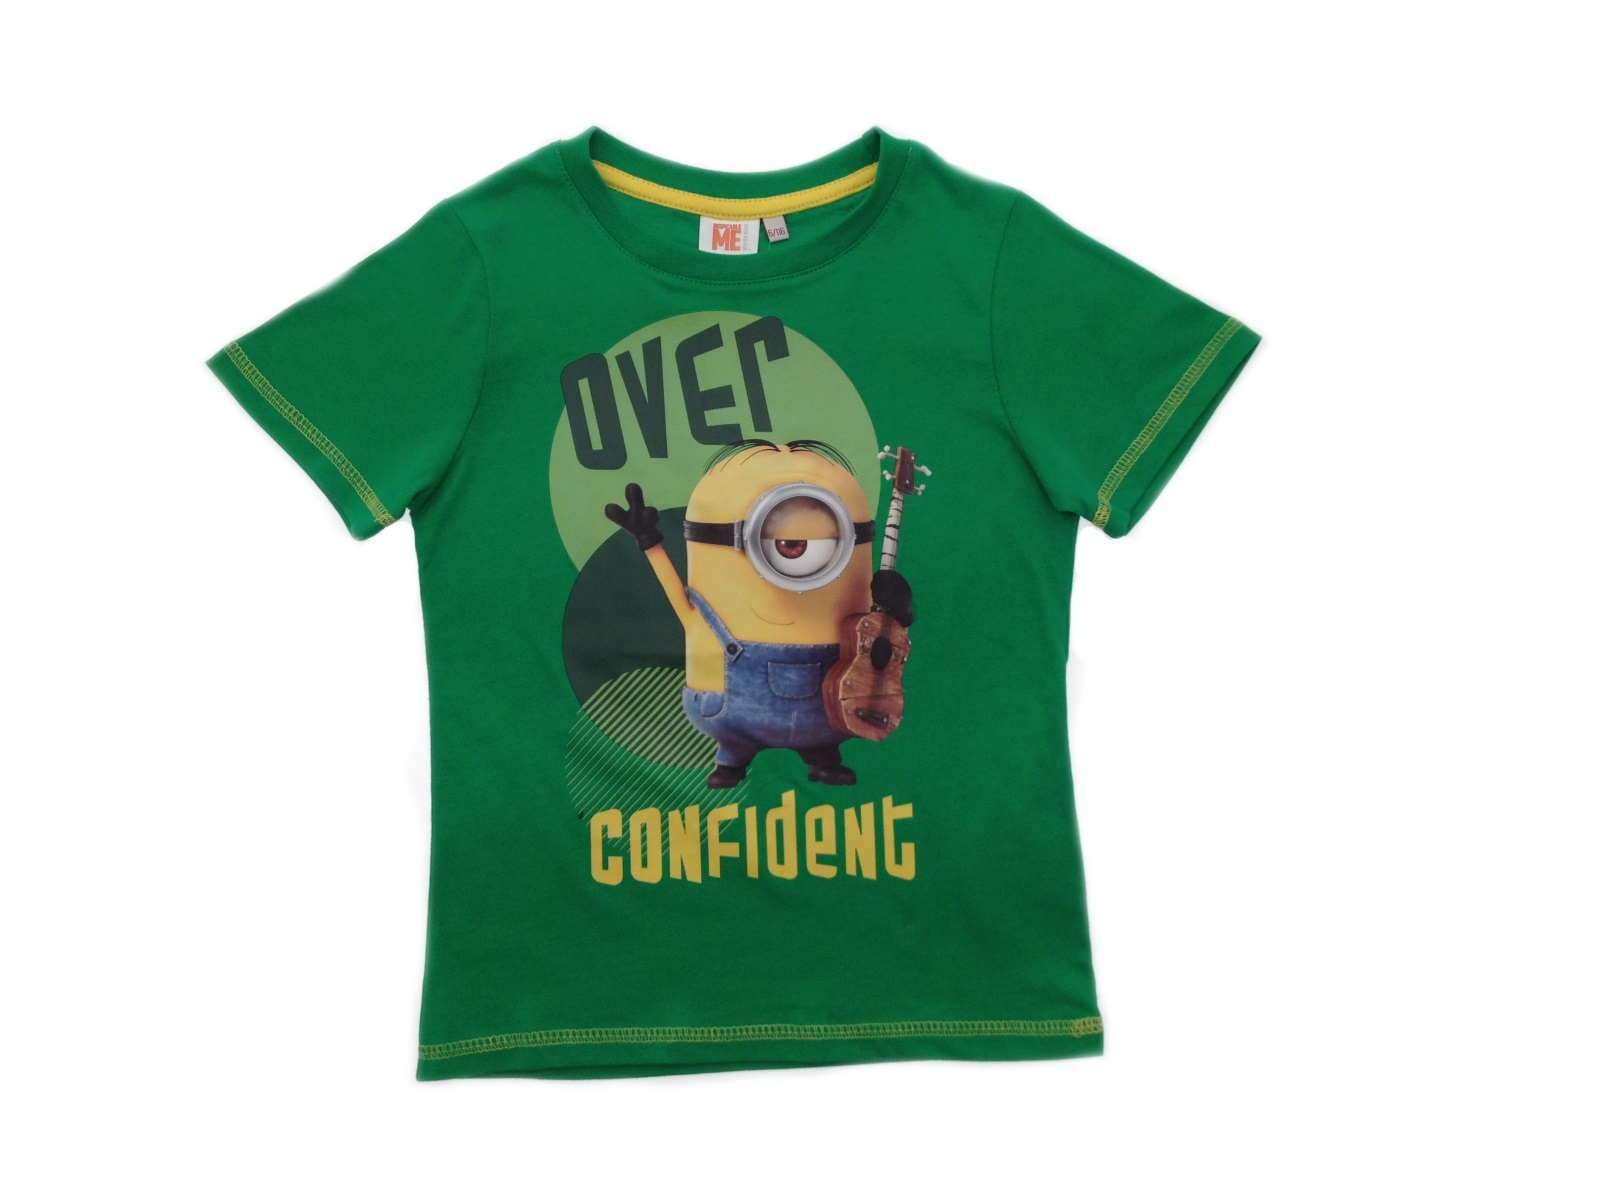 despicable me tops